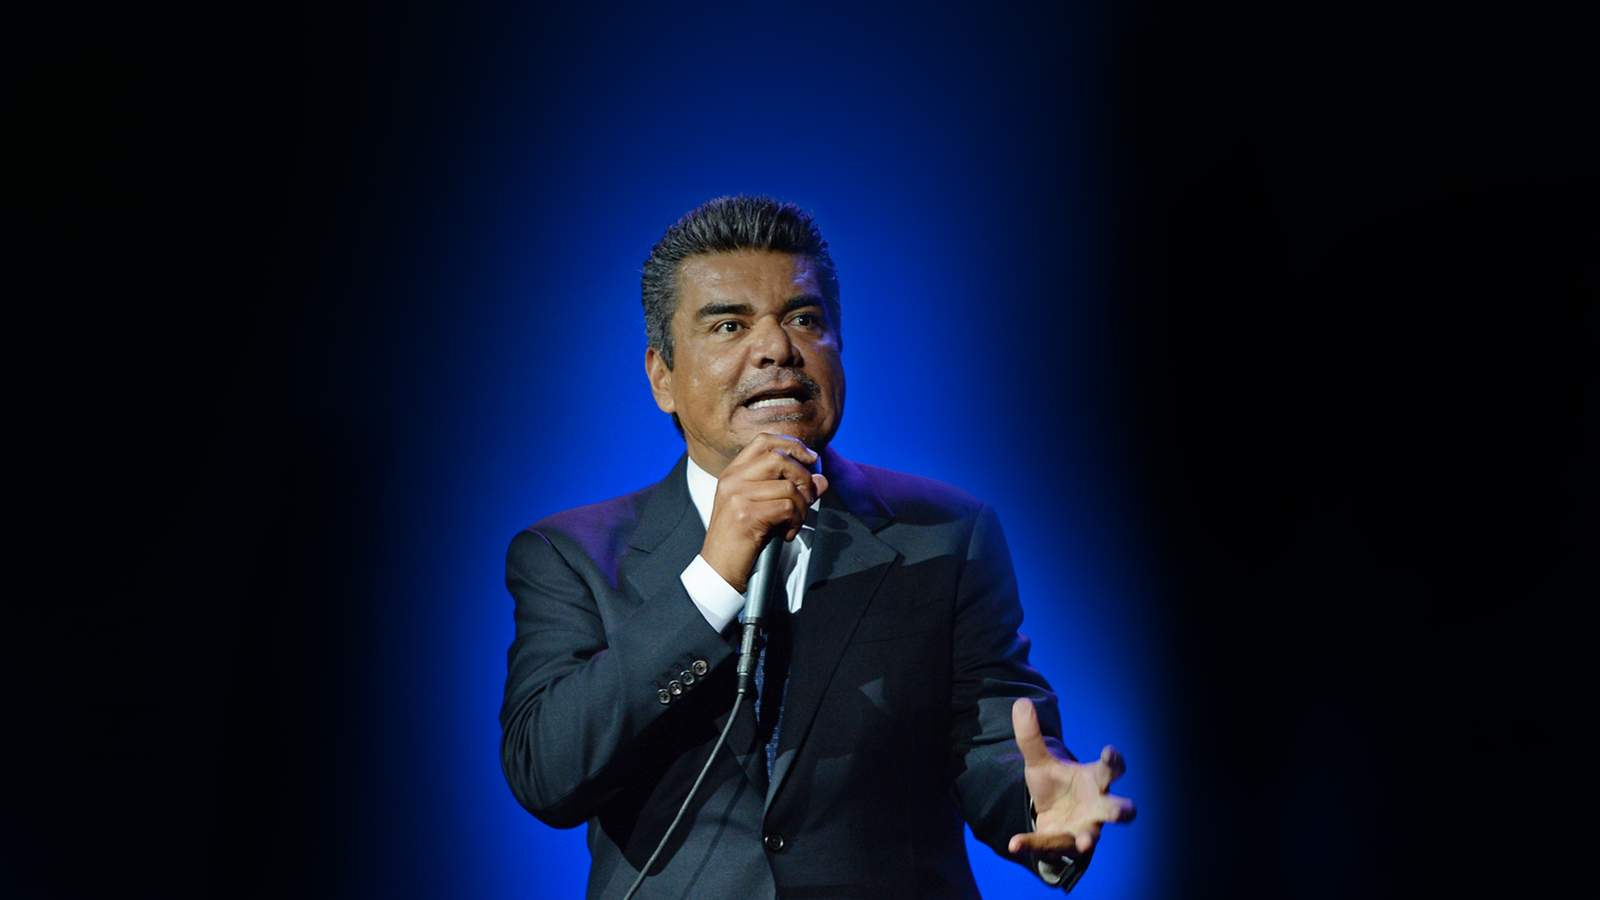 George Lopez (Rescheduled from 3/14/2020, 5/29/2020, 10/25/2020)